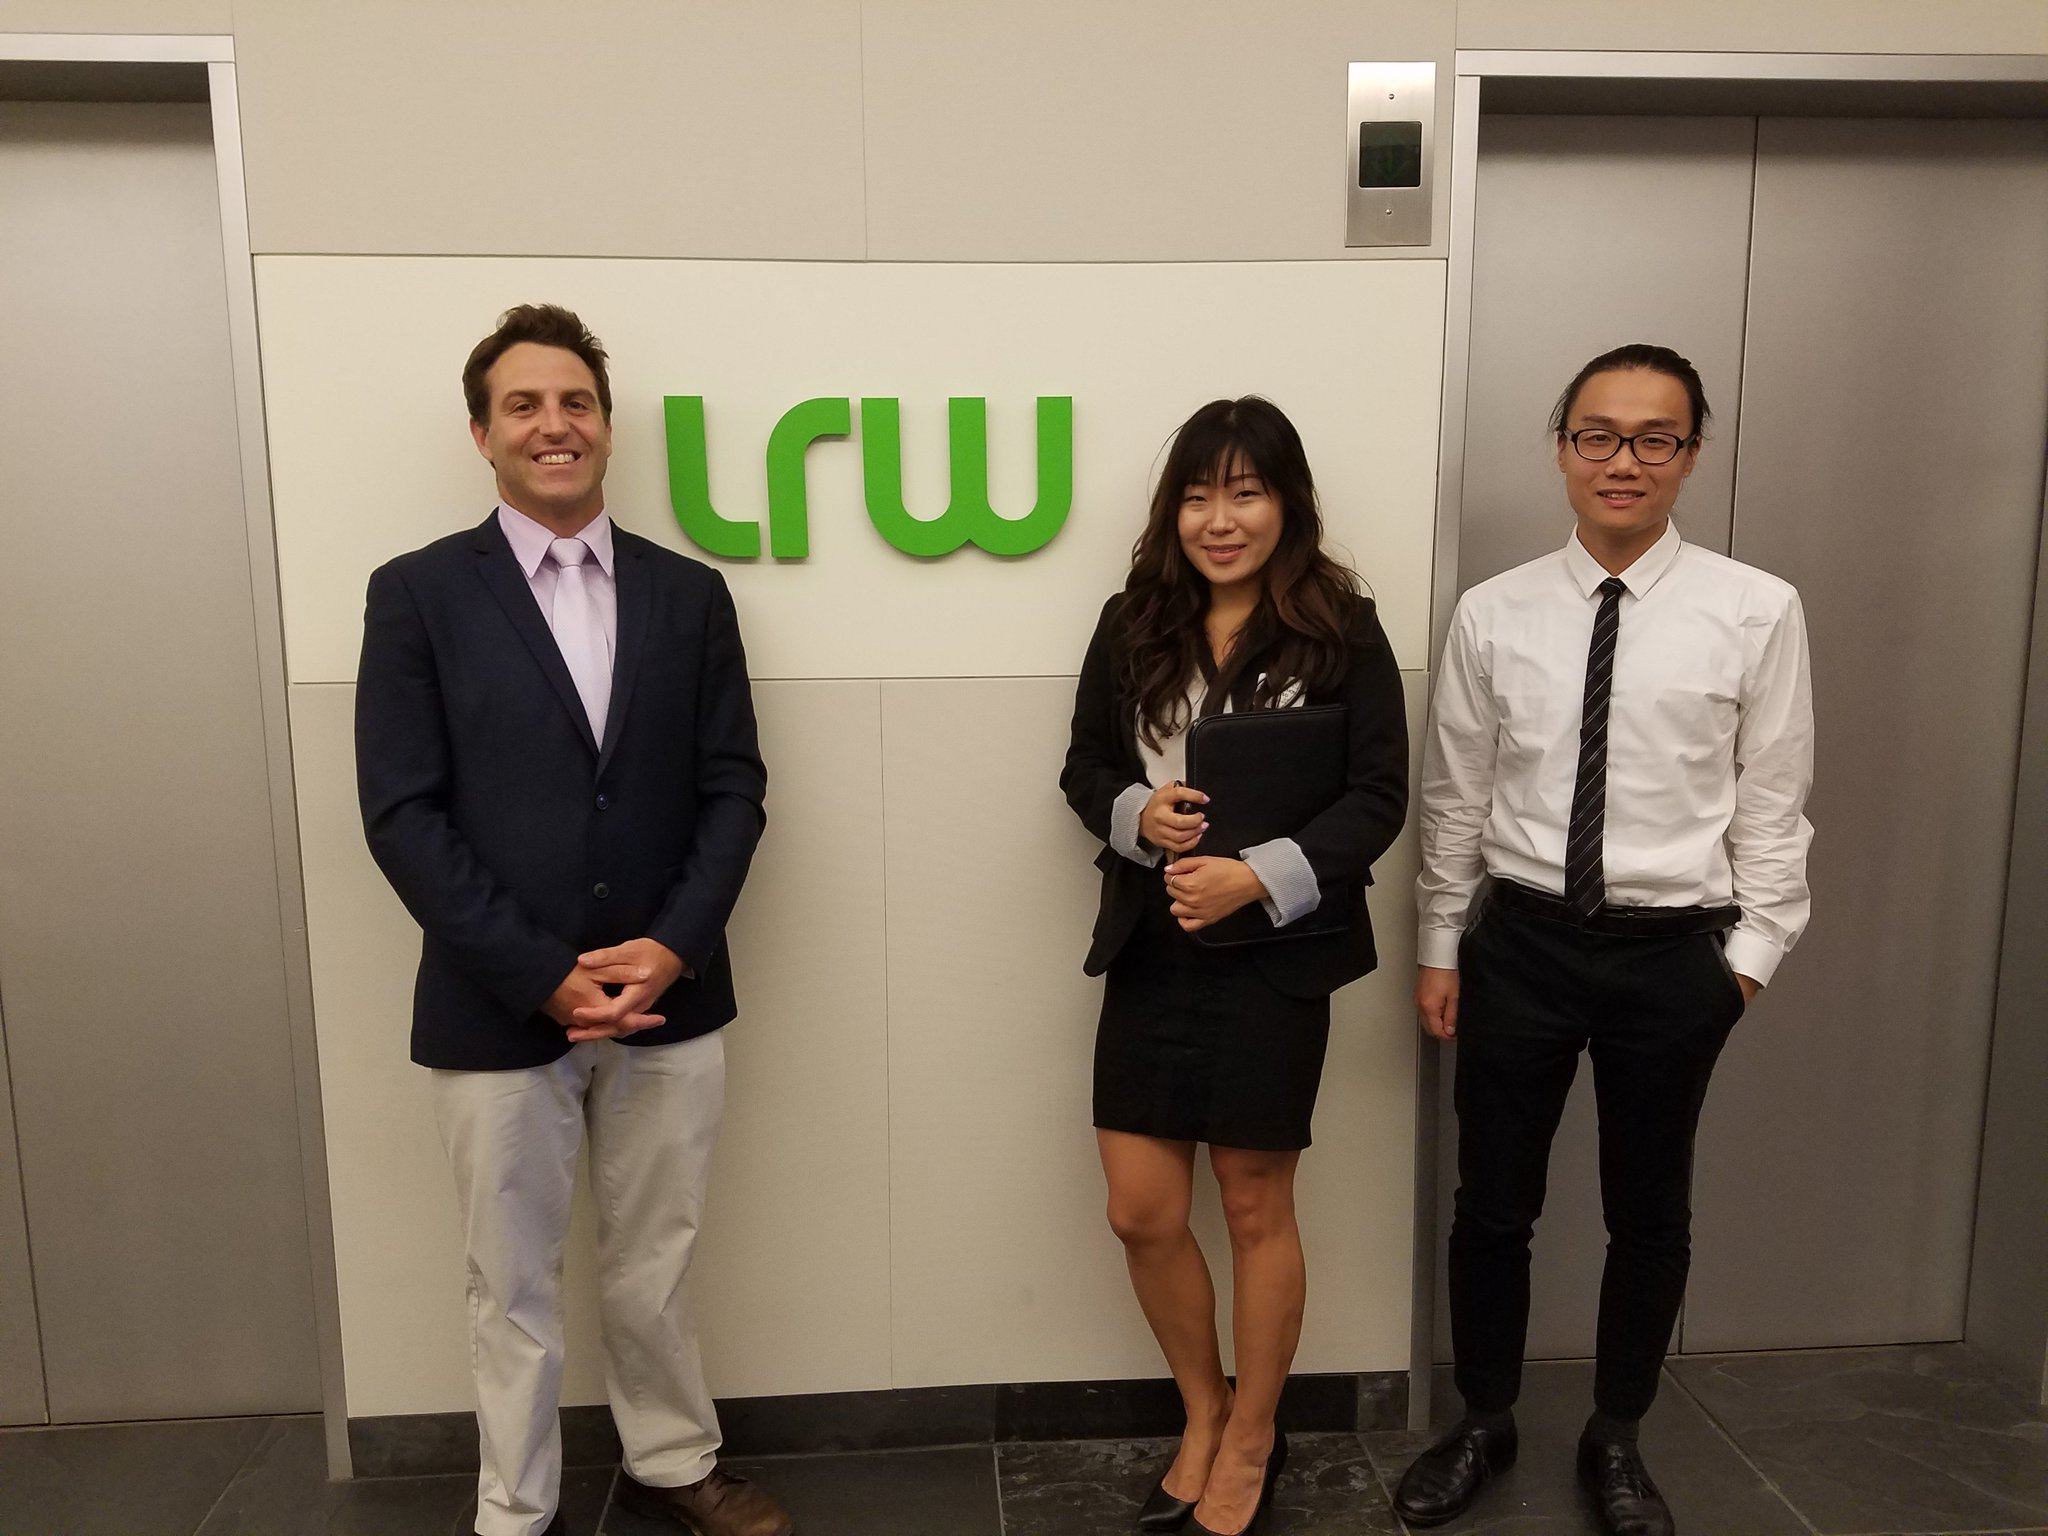 Also yesterday, students ventured to @LRWonline for a look into the private sector and to hash out careers related to research. https://t.co/PbSIEkpK8p